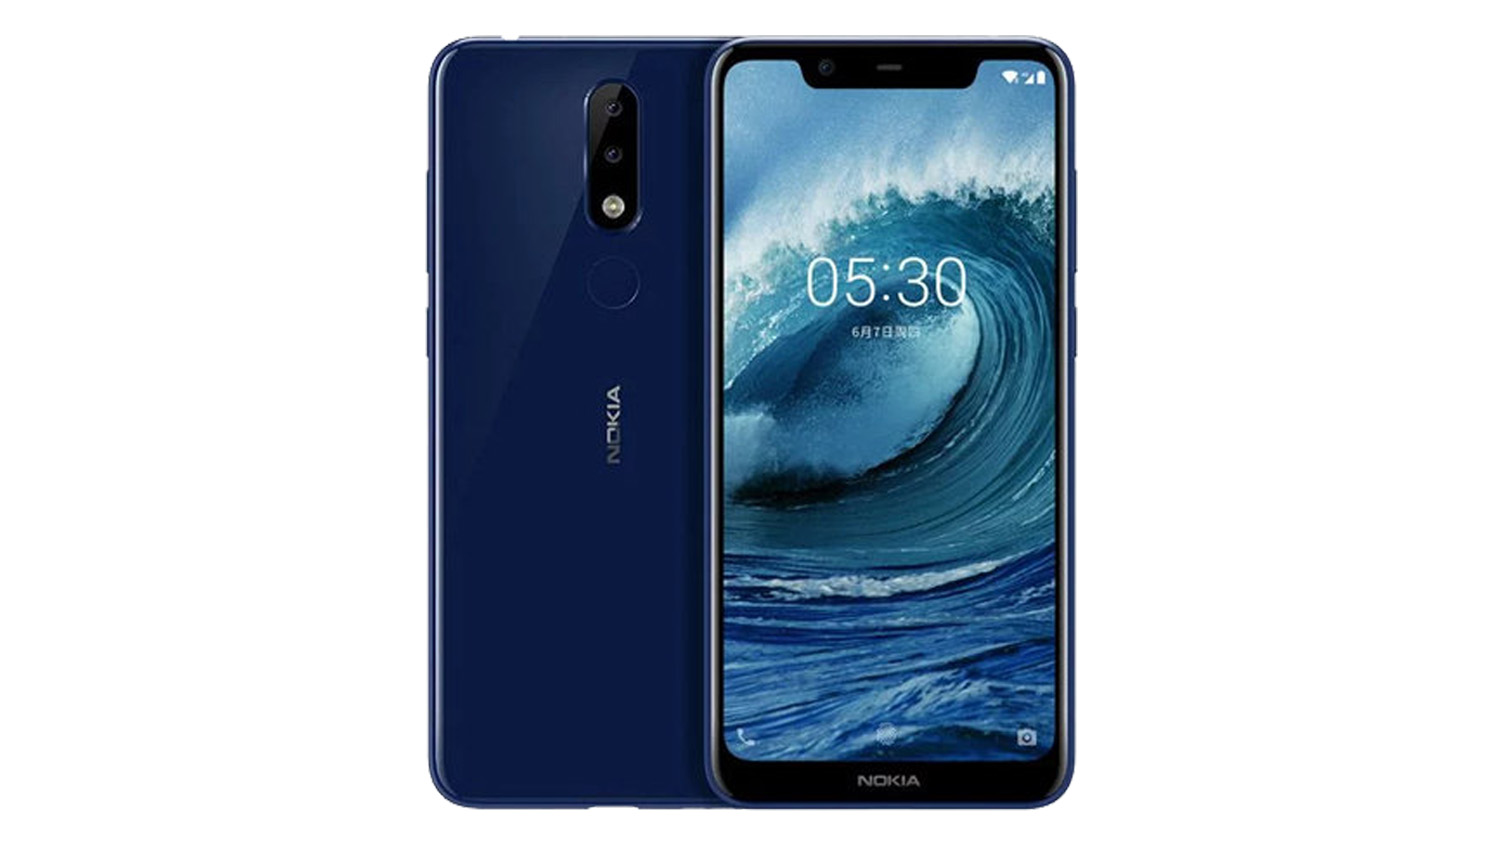 Nokia X5 goes official with a dual-camera setup